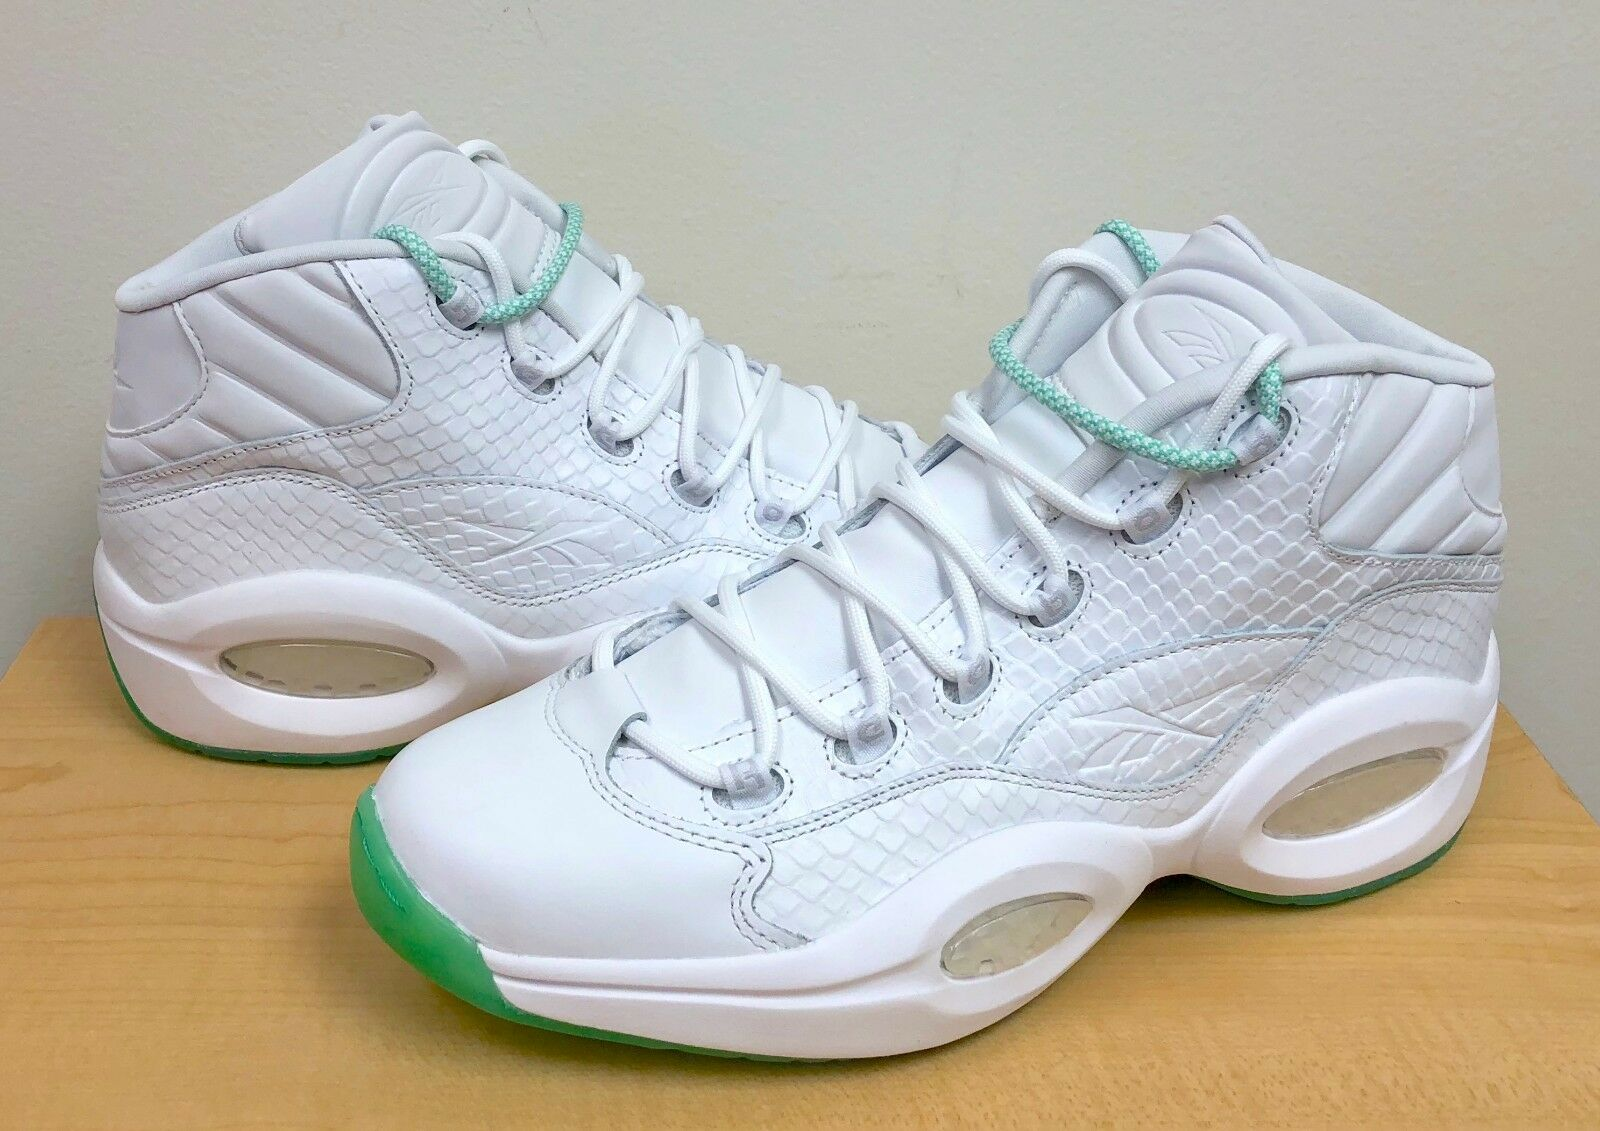 eacd5304f663 Reebok Question Mid White pearlized Red 79757 Men s Sz 11.5 for sale ...